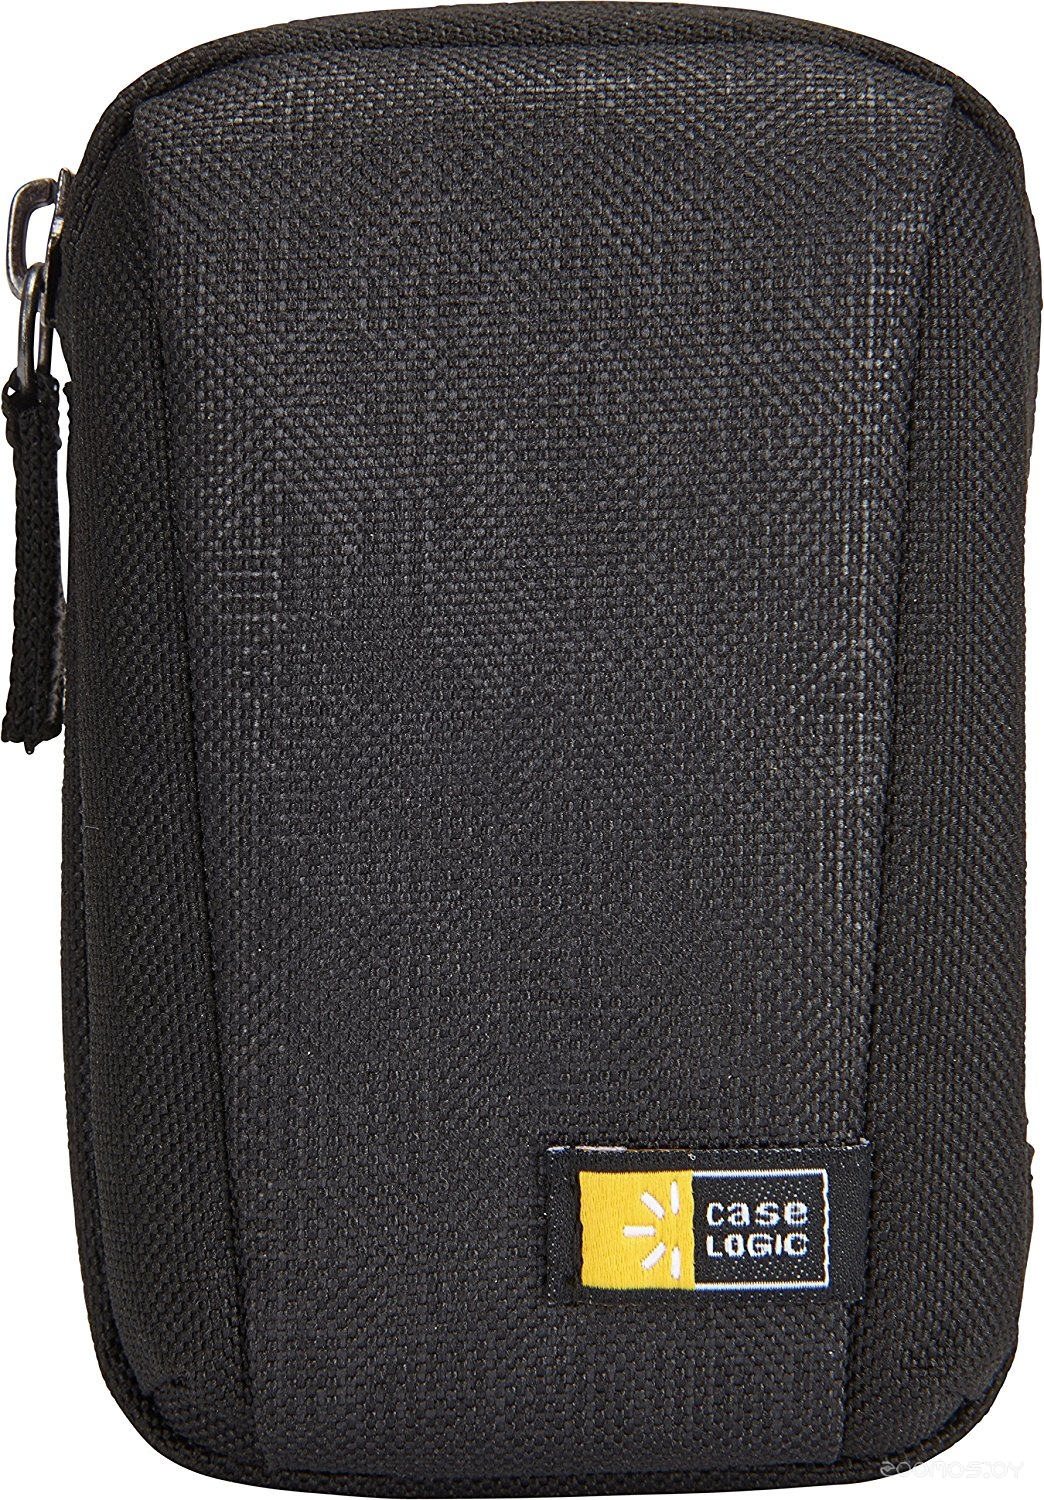 CASE LOGIC Memento Point & Shoot Camera Case